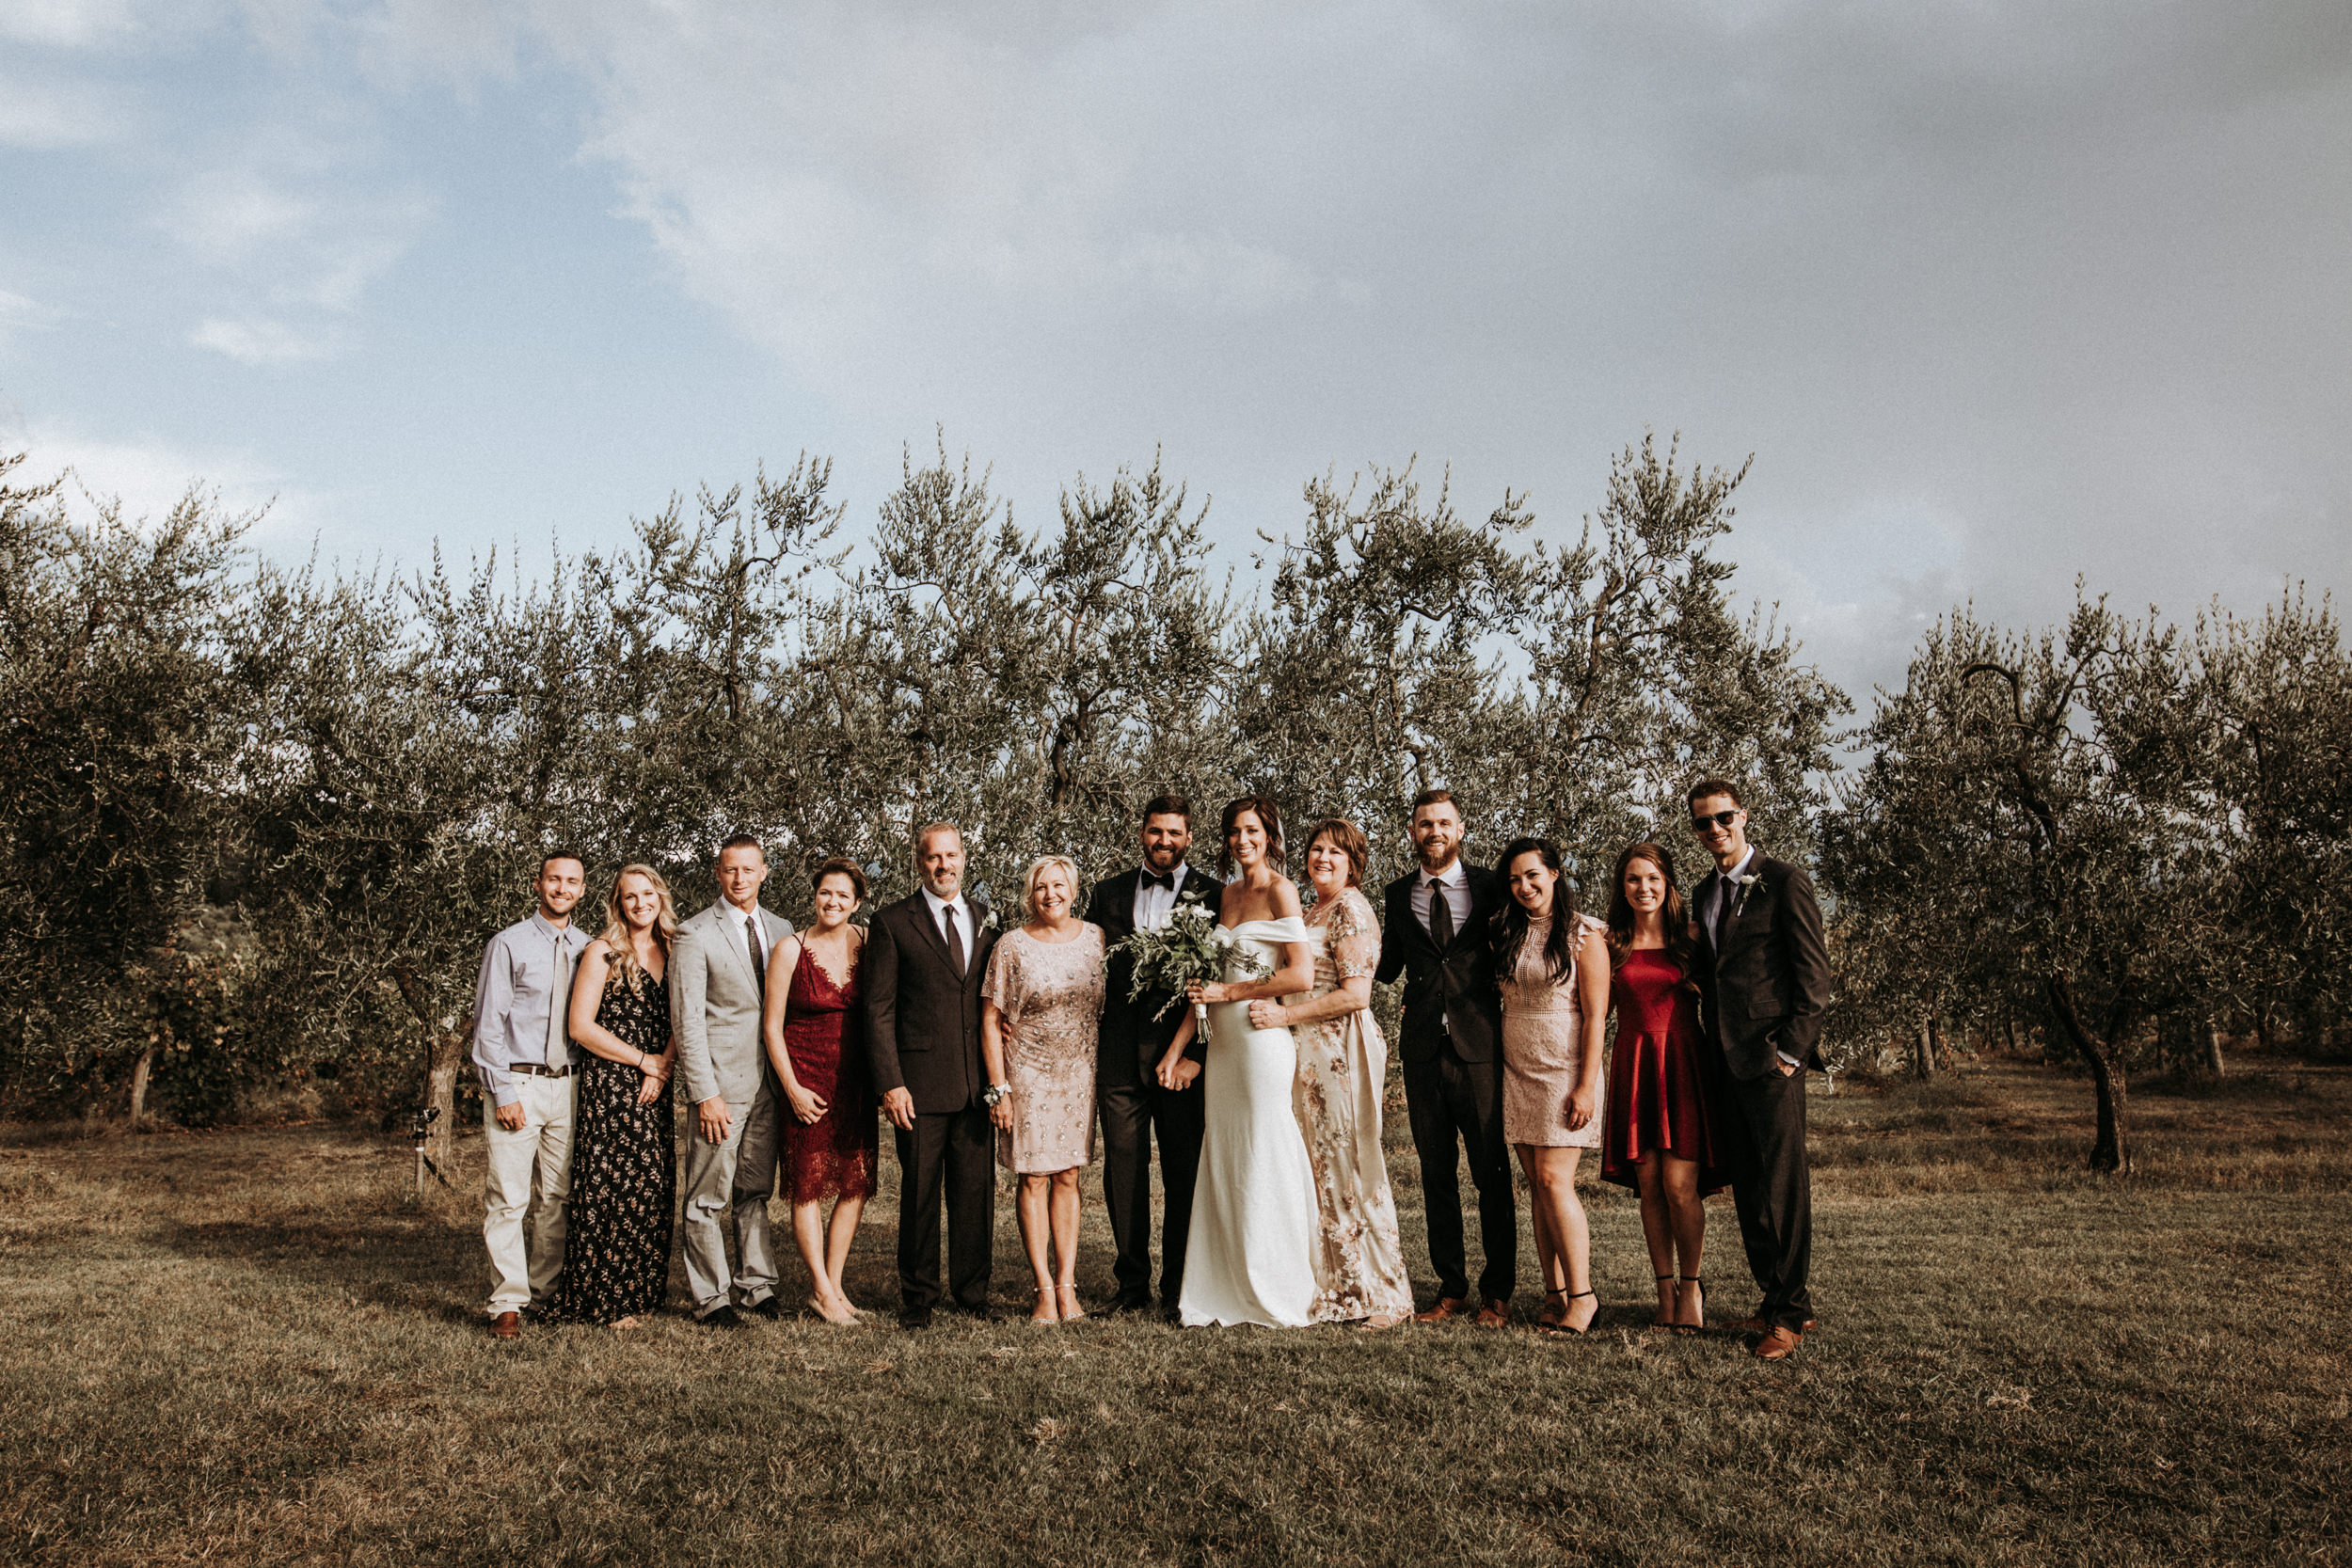 dm_photography_KW_Tuscanyweddingday_260